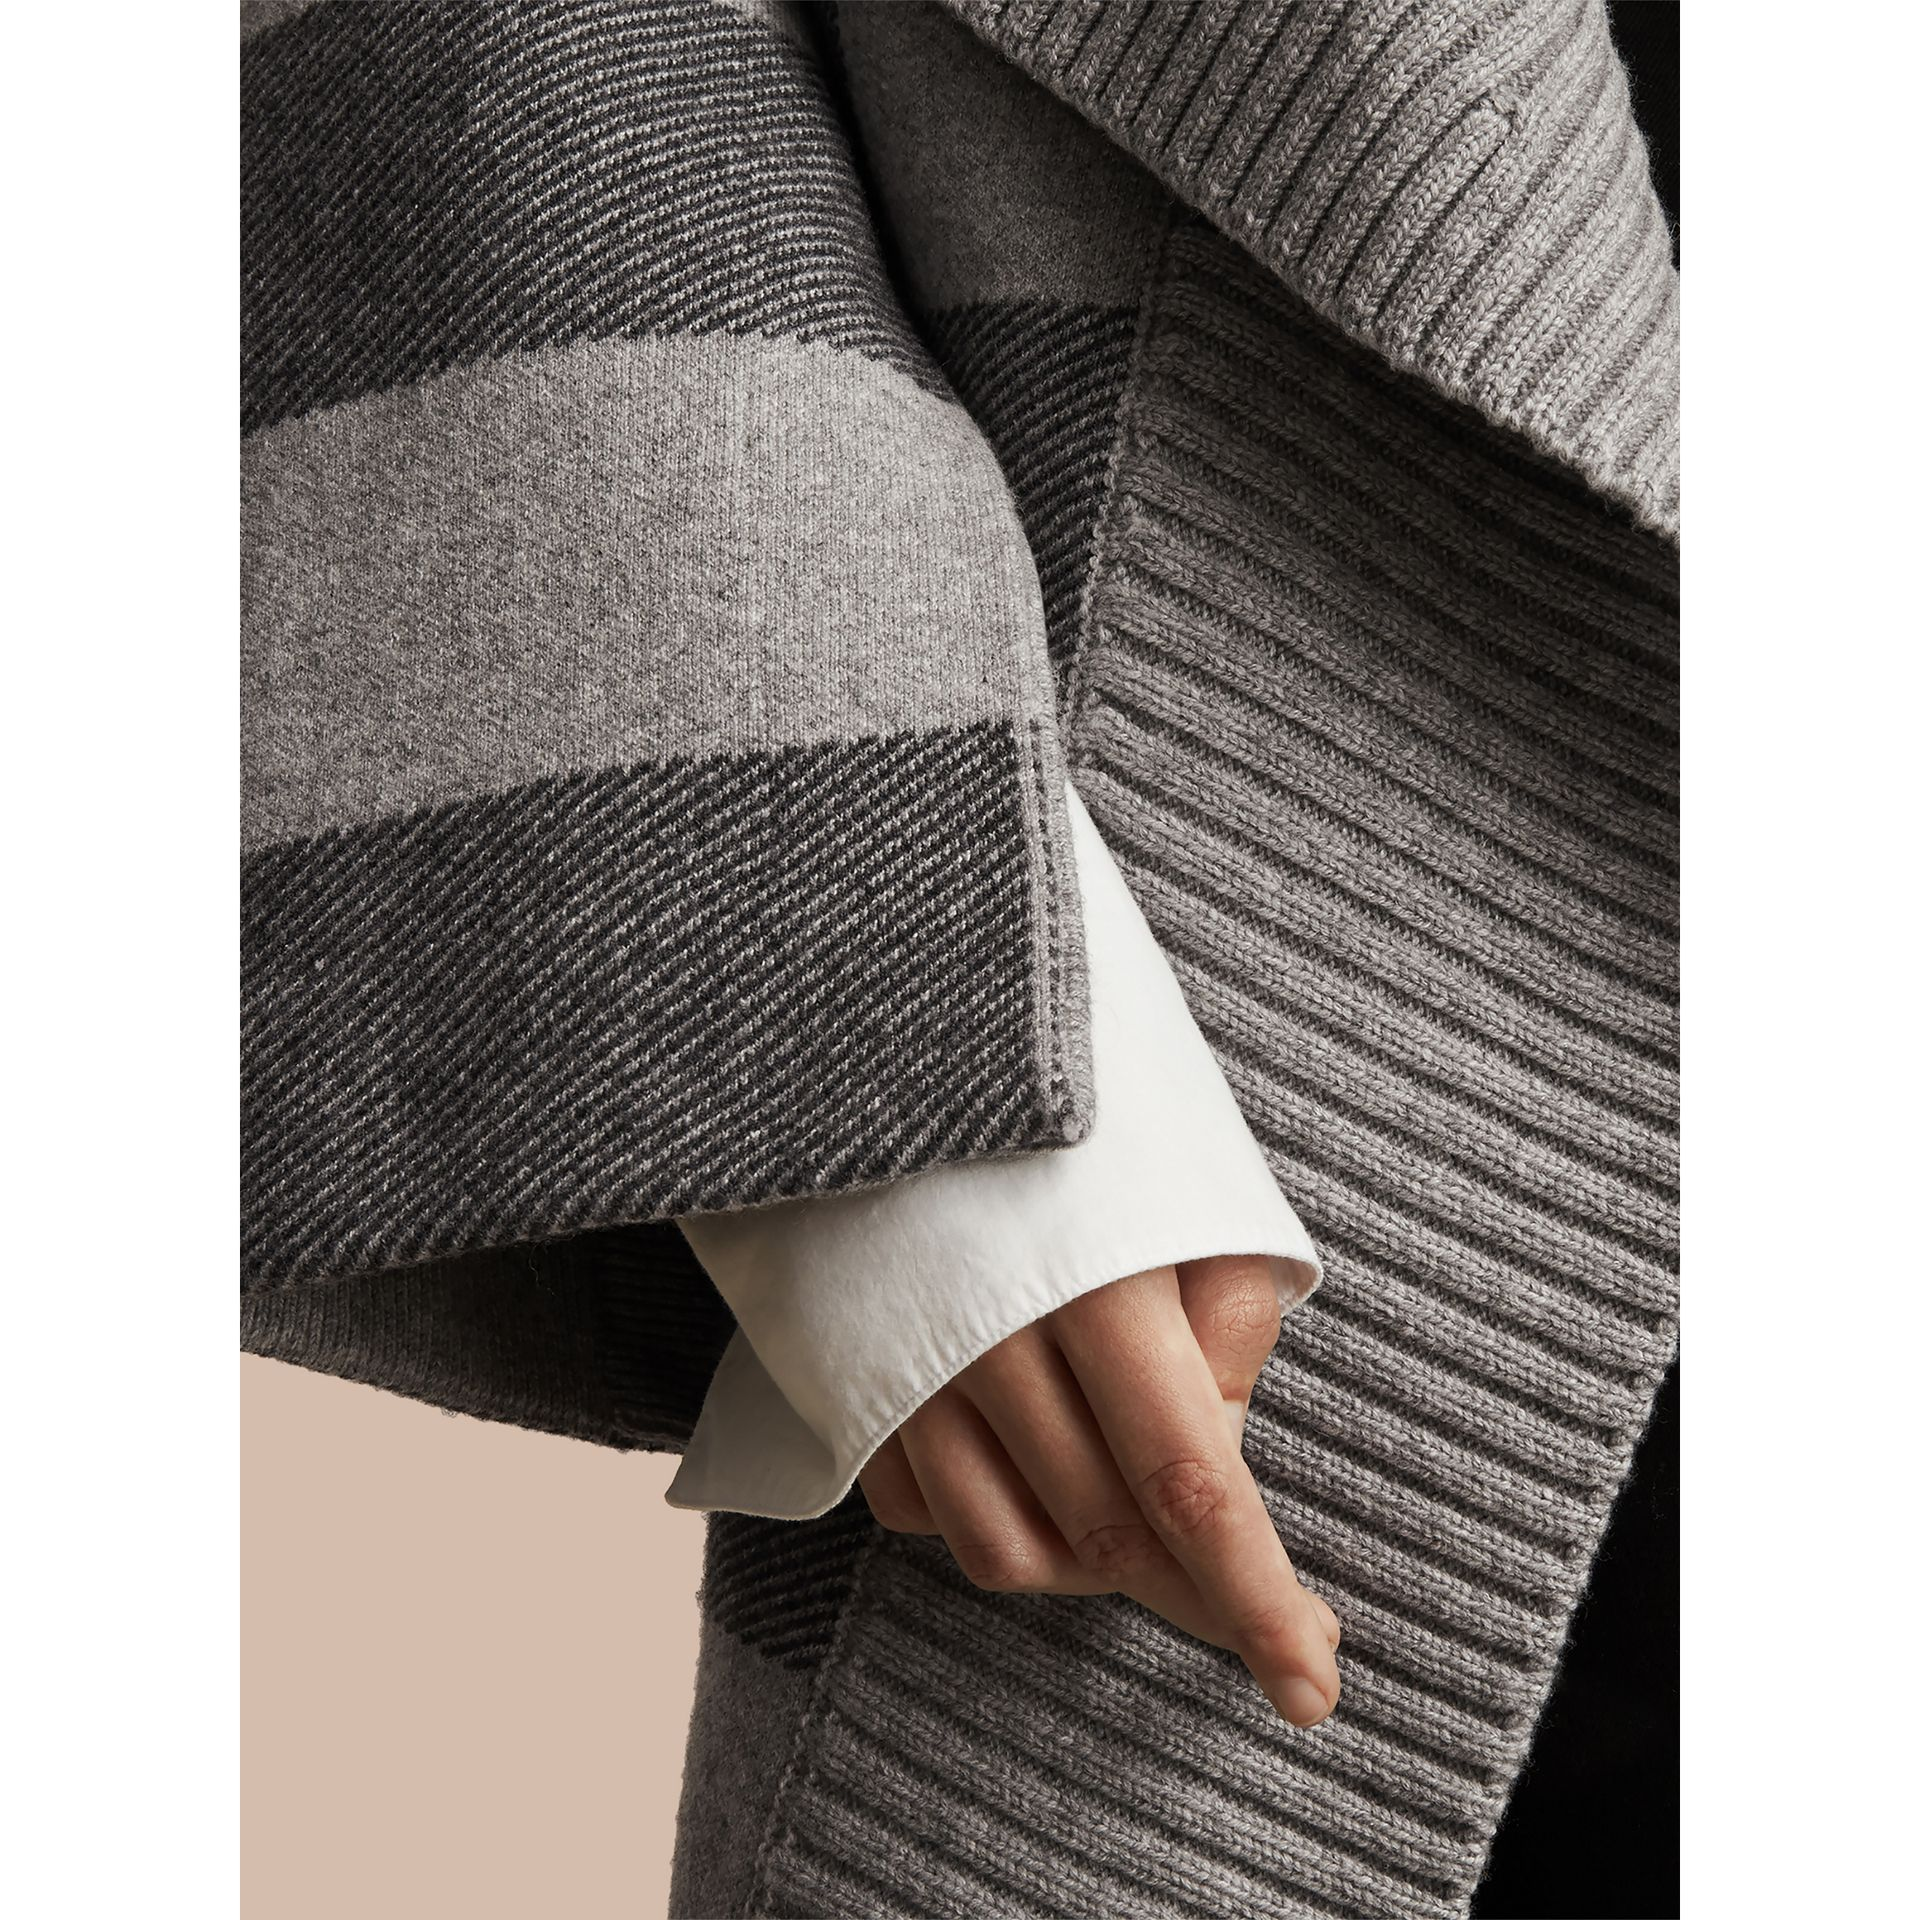 Check Wool Cashmere Blend Cardigan Coat in Pale Grey Melange - Women | Burberry - gallery image 2